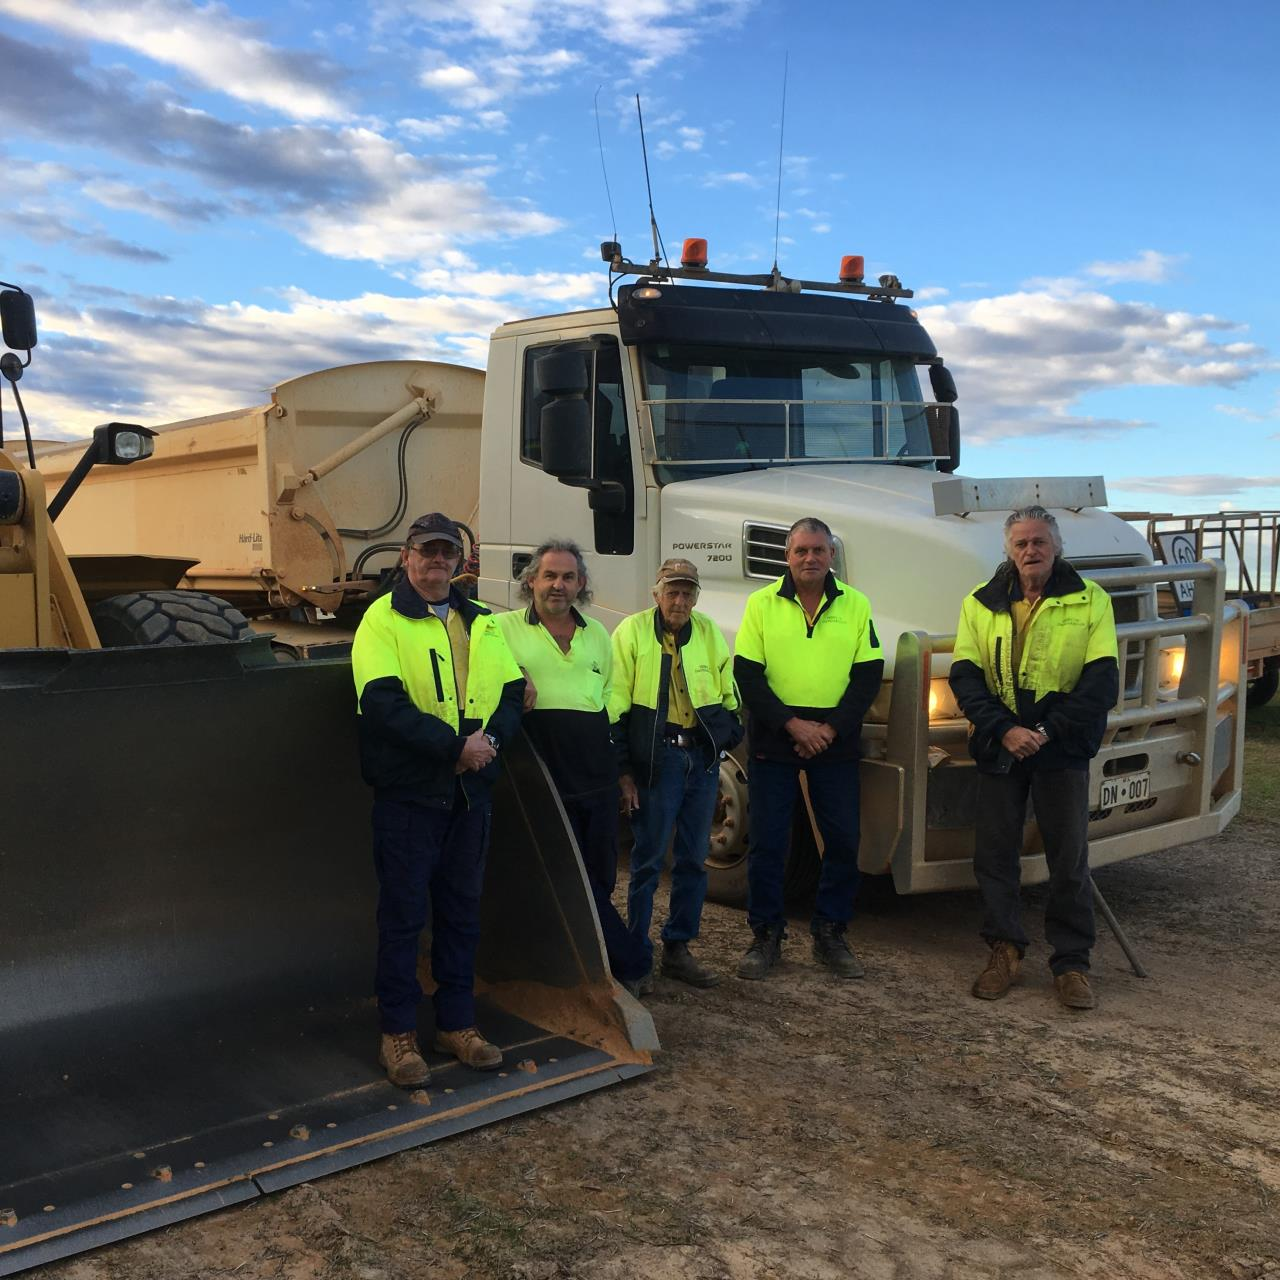 SHIRE OF DANDARAGAN ROAD CREW FEATURED IN NATIONAL MAGAZINE